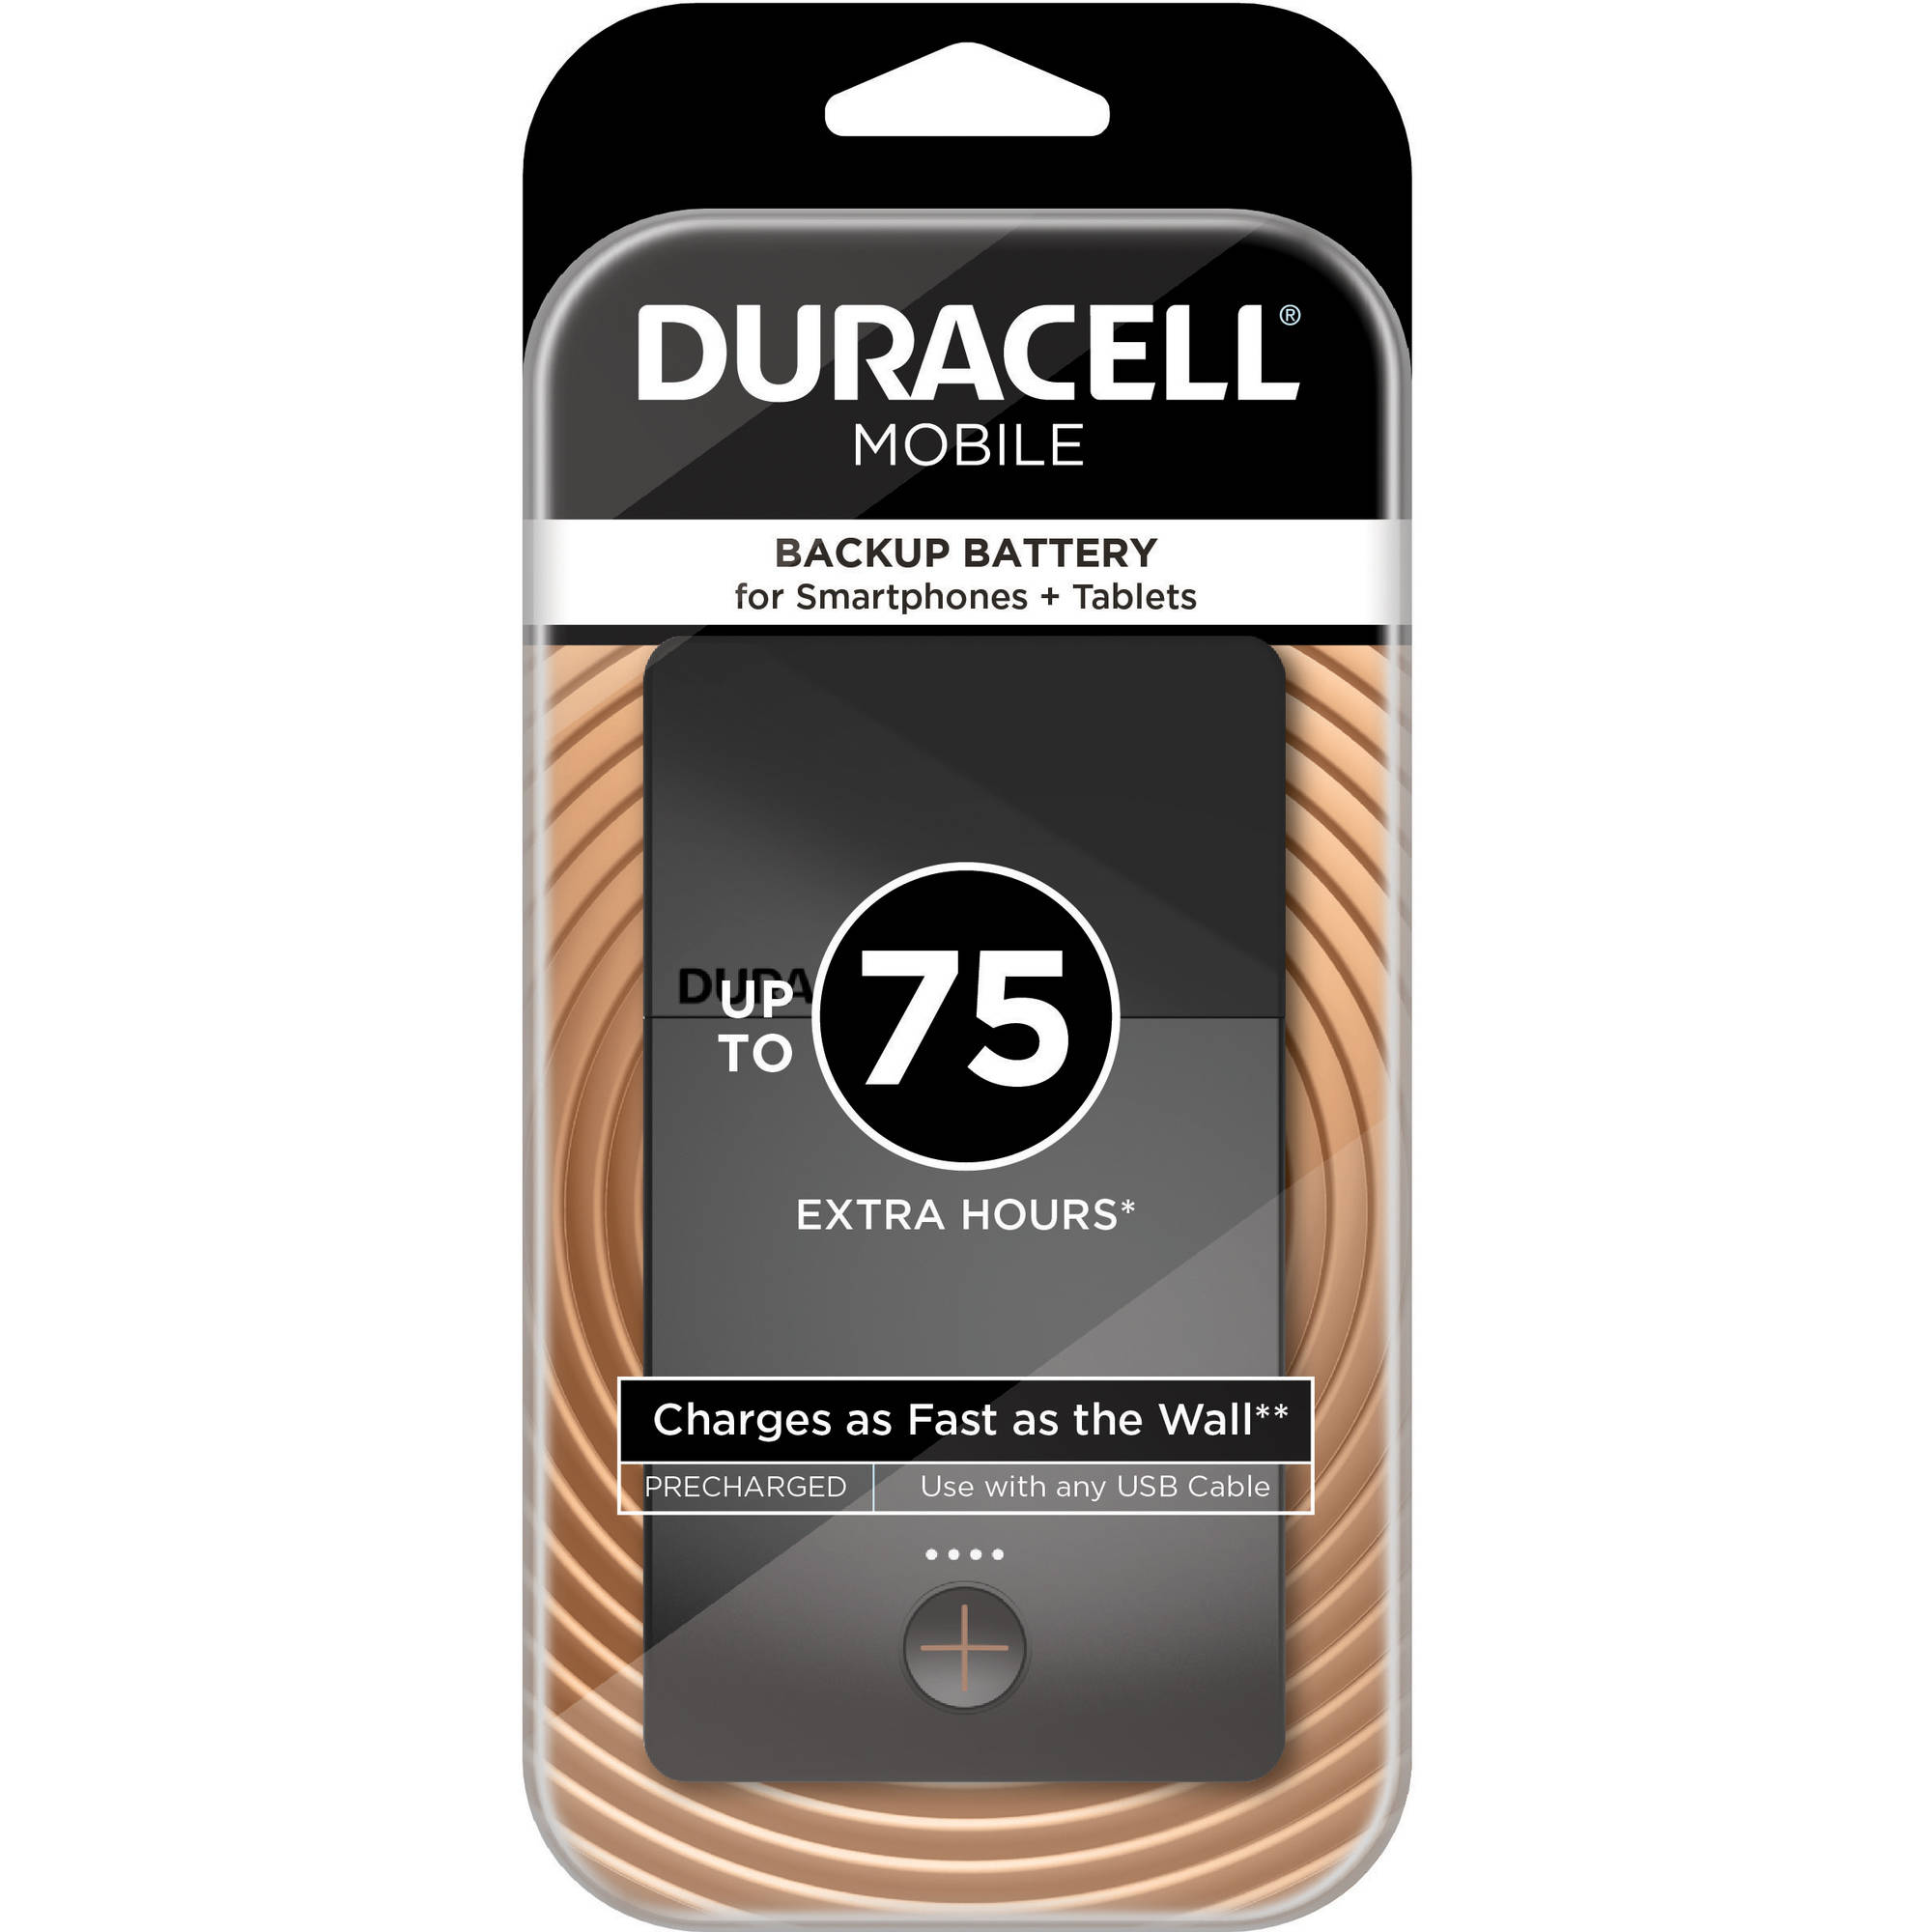 Duracell Mobile PowerPack Plus 10200 mAh Universal Backup Battery for Smartphones, Tablets and Other USB devices